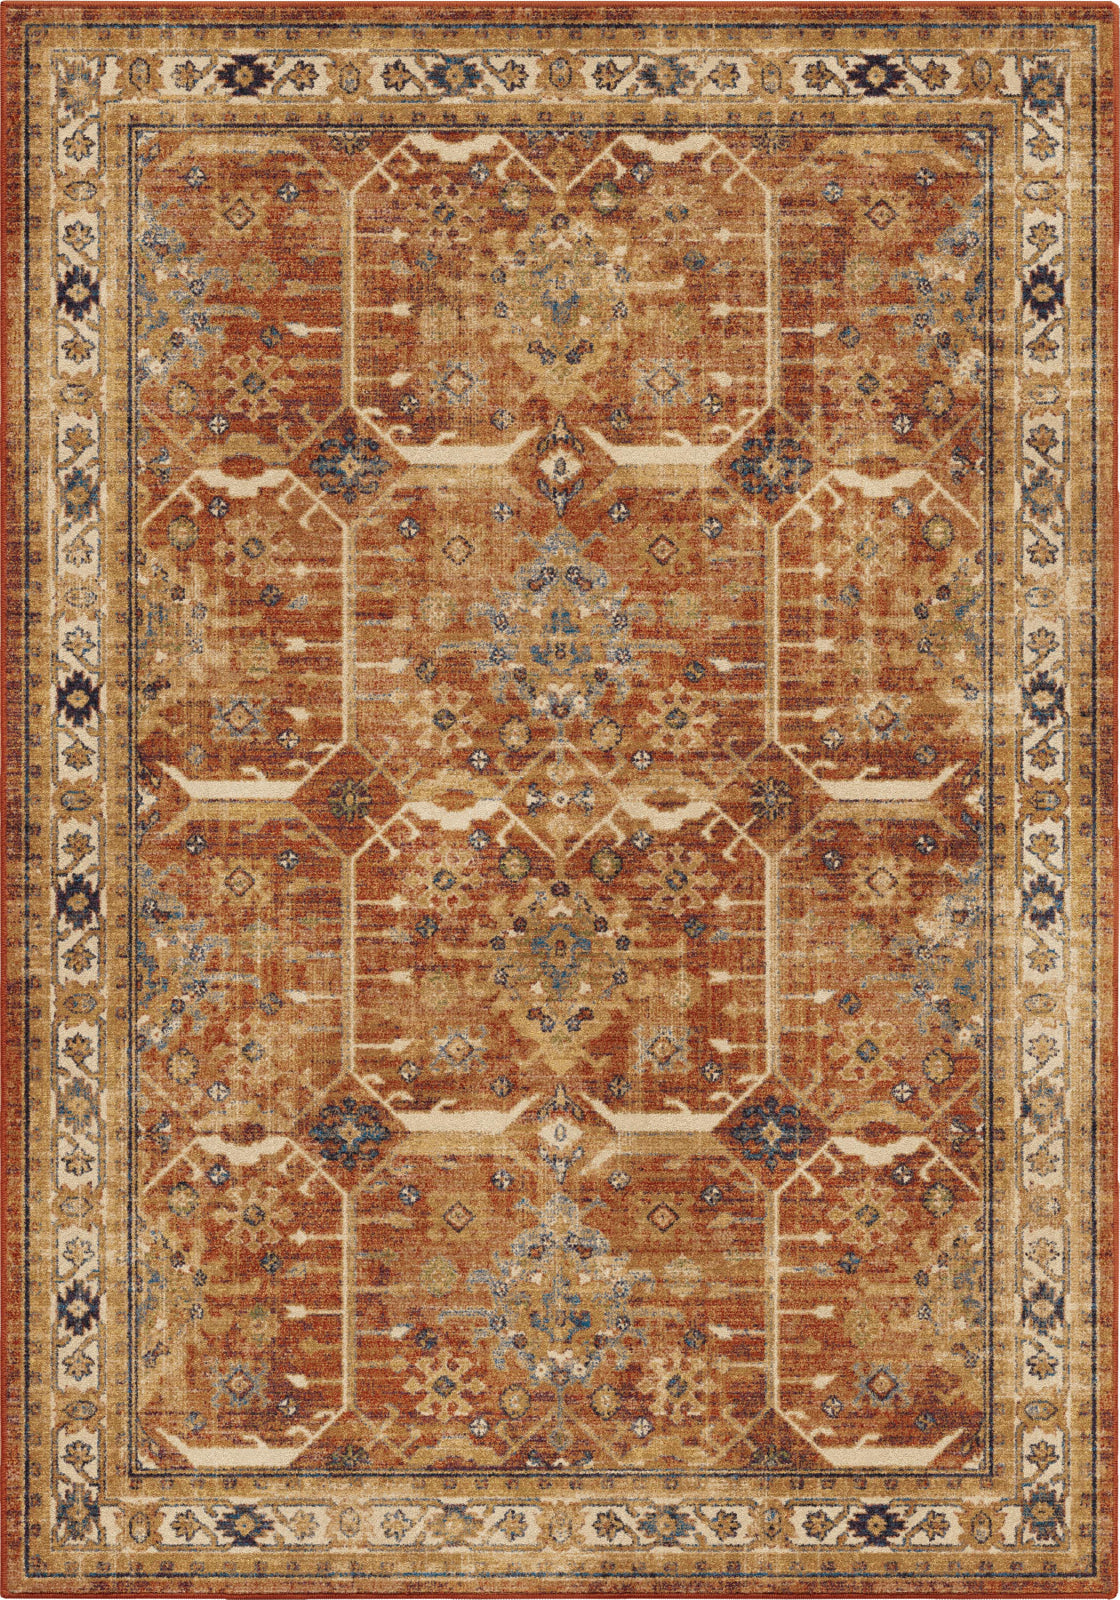 Orian Rugs Alexandria Tazum Red Faded Area Rug by Palmetto Living main image